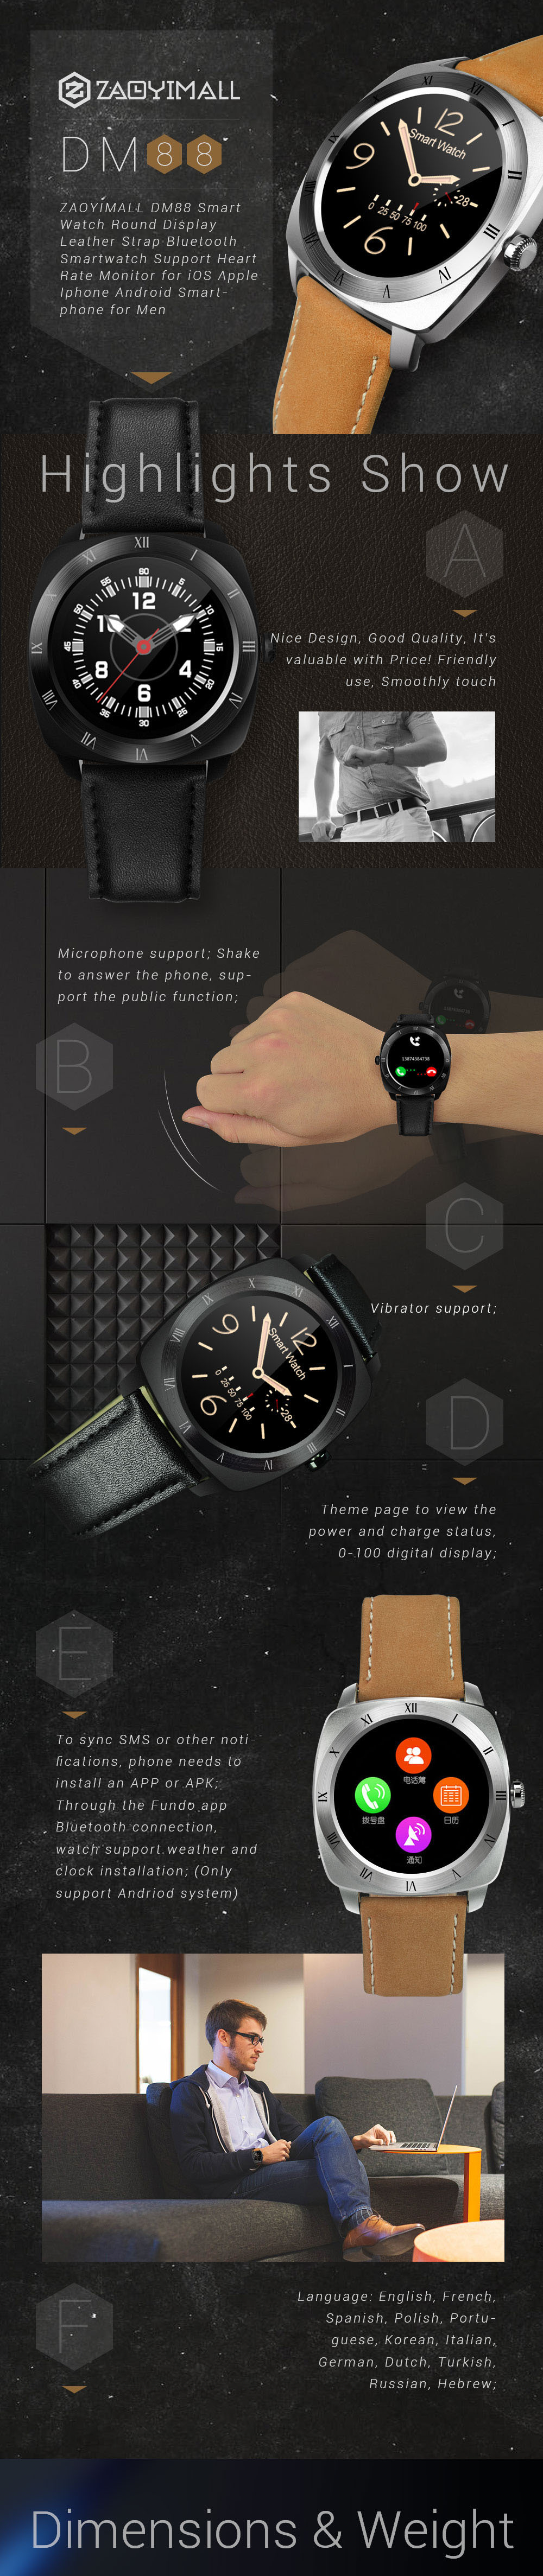 ZAOYI DM88 Smart Watch Round Display Bluetooth Smartwatch Support Heart Rate Monitor for iOS Apple Iphone Android Smartphone